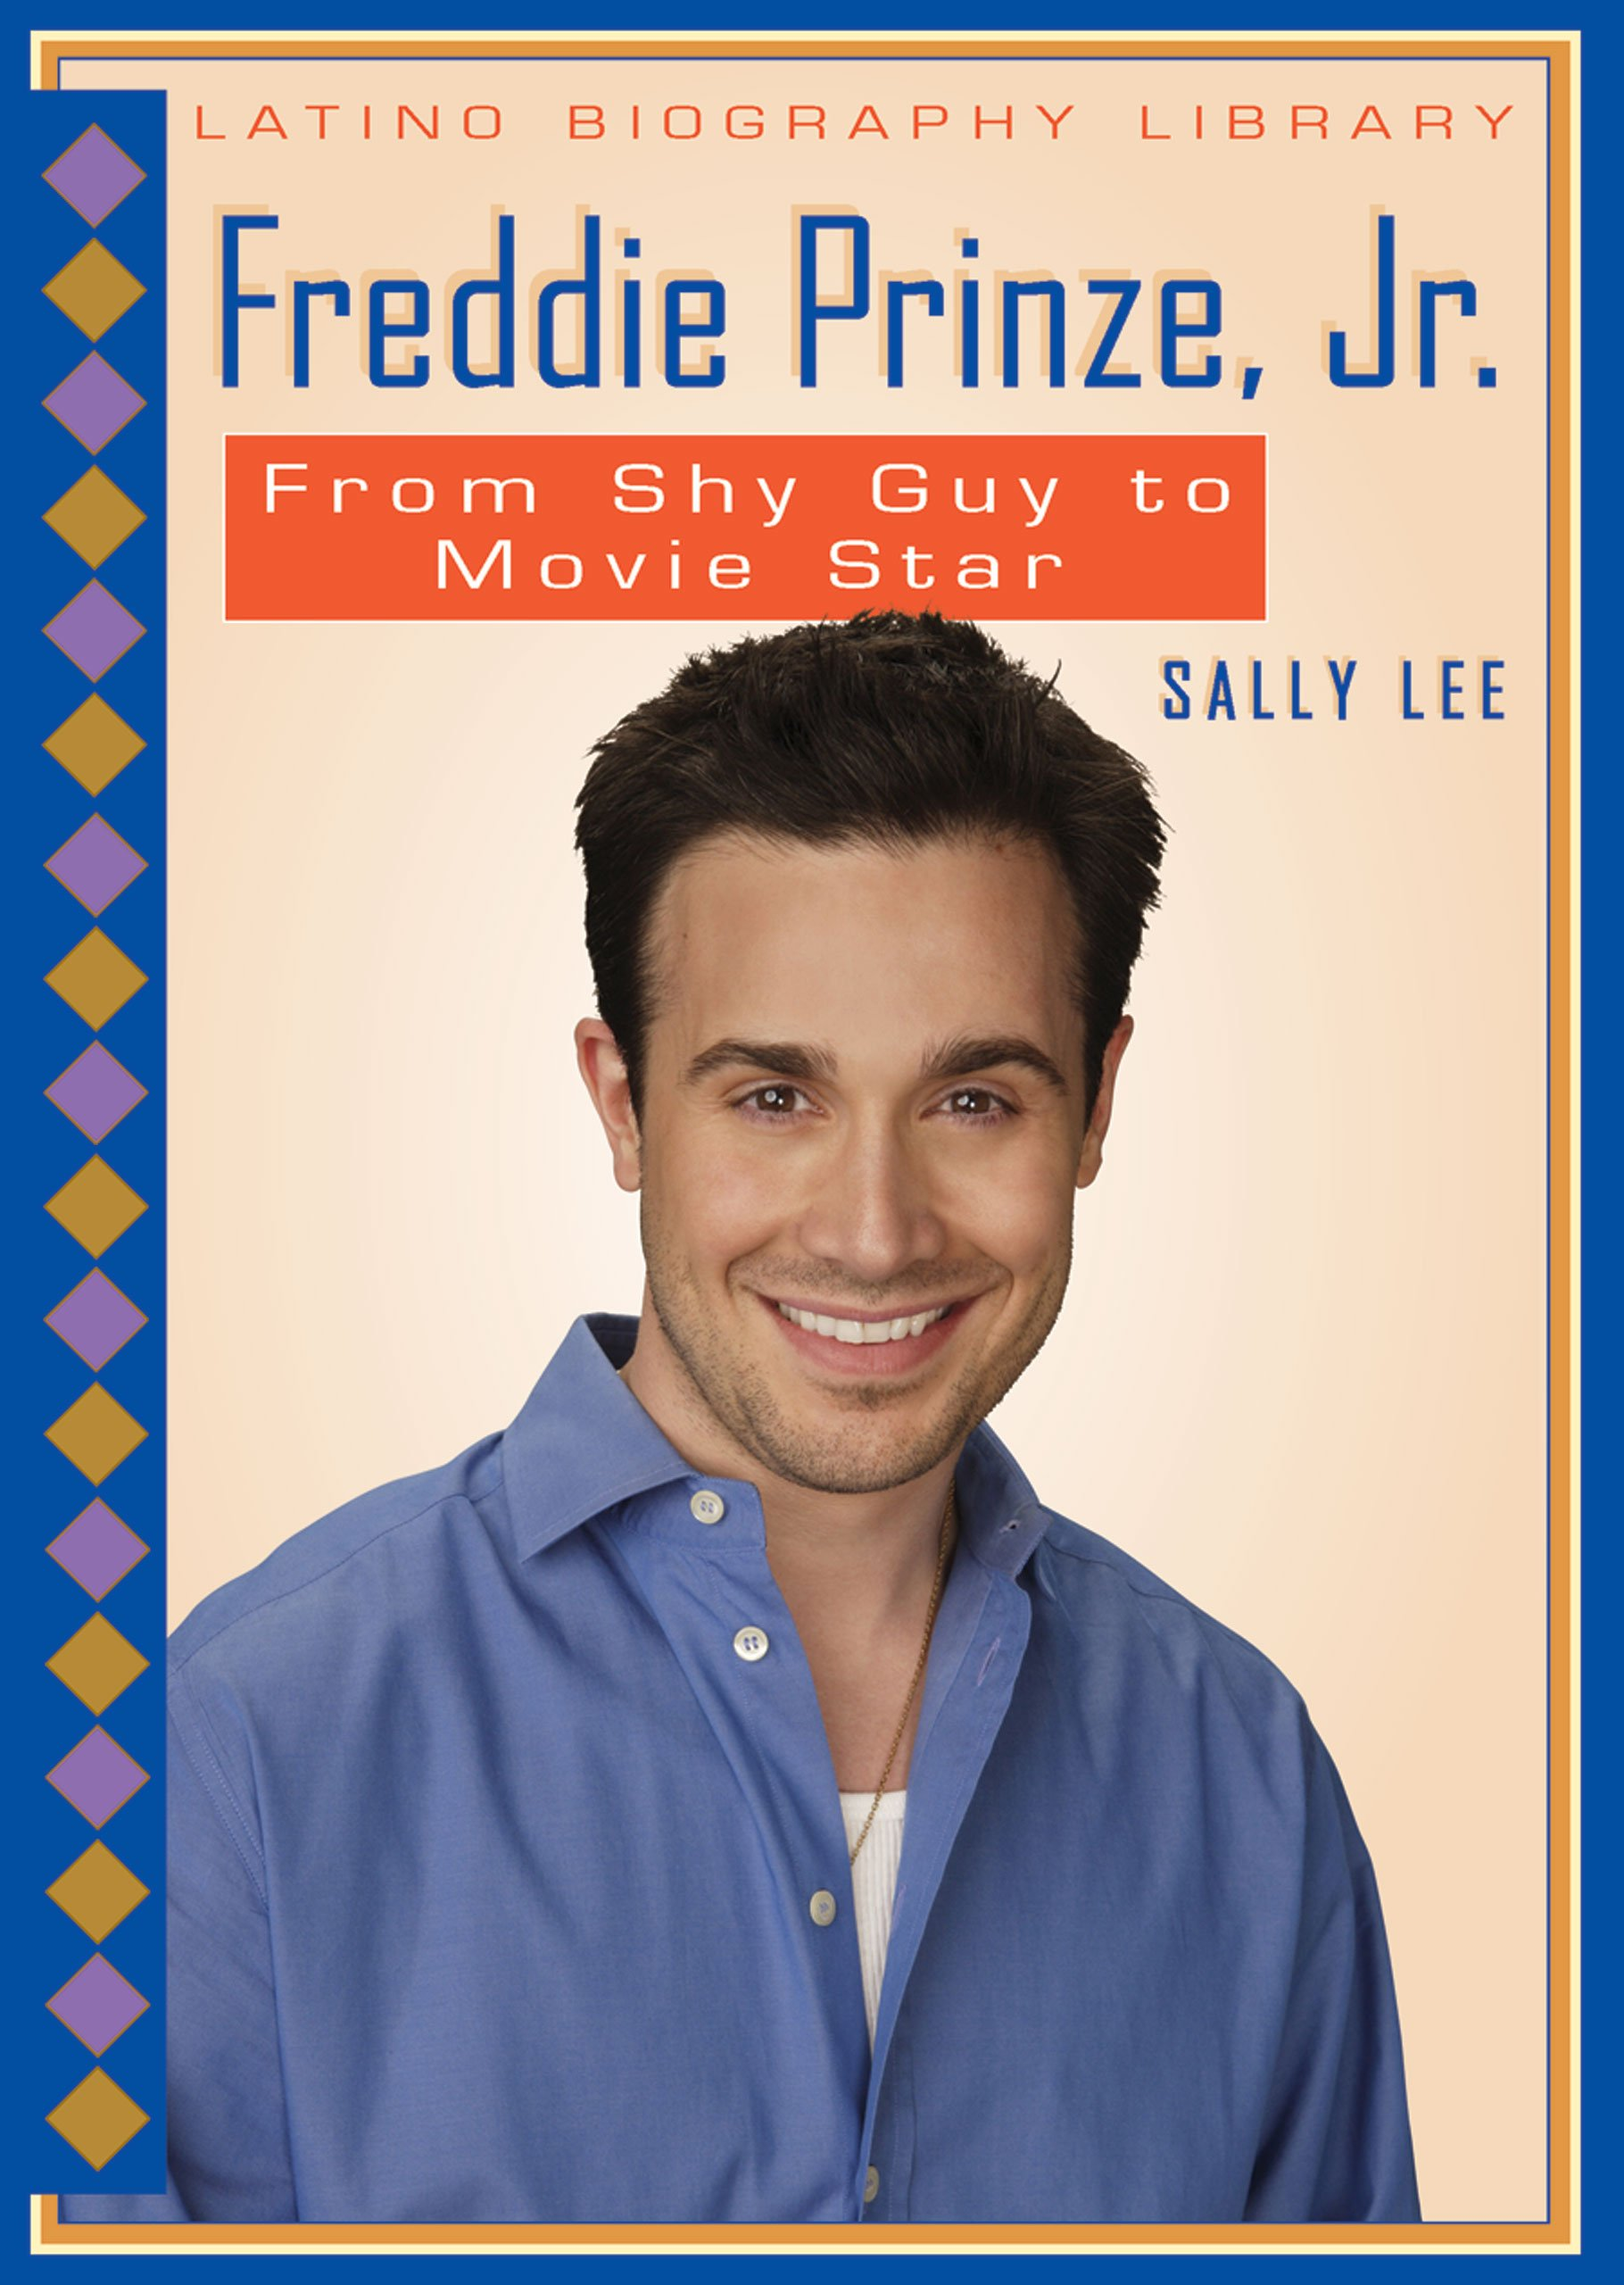 Freddie Prinze, Jr.: From Shy Guy to Movie Star (Latino Biography Library) ebook